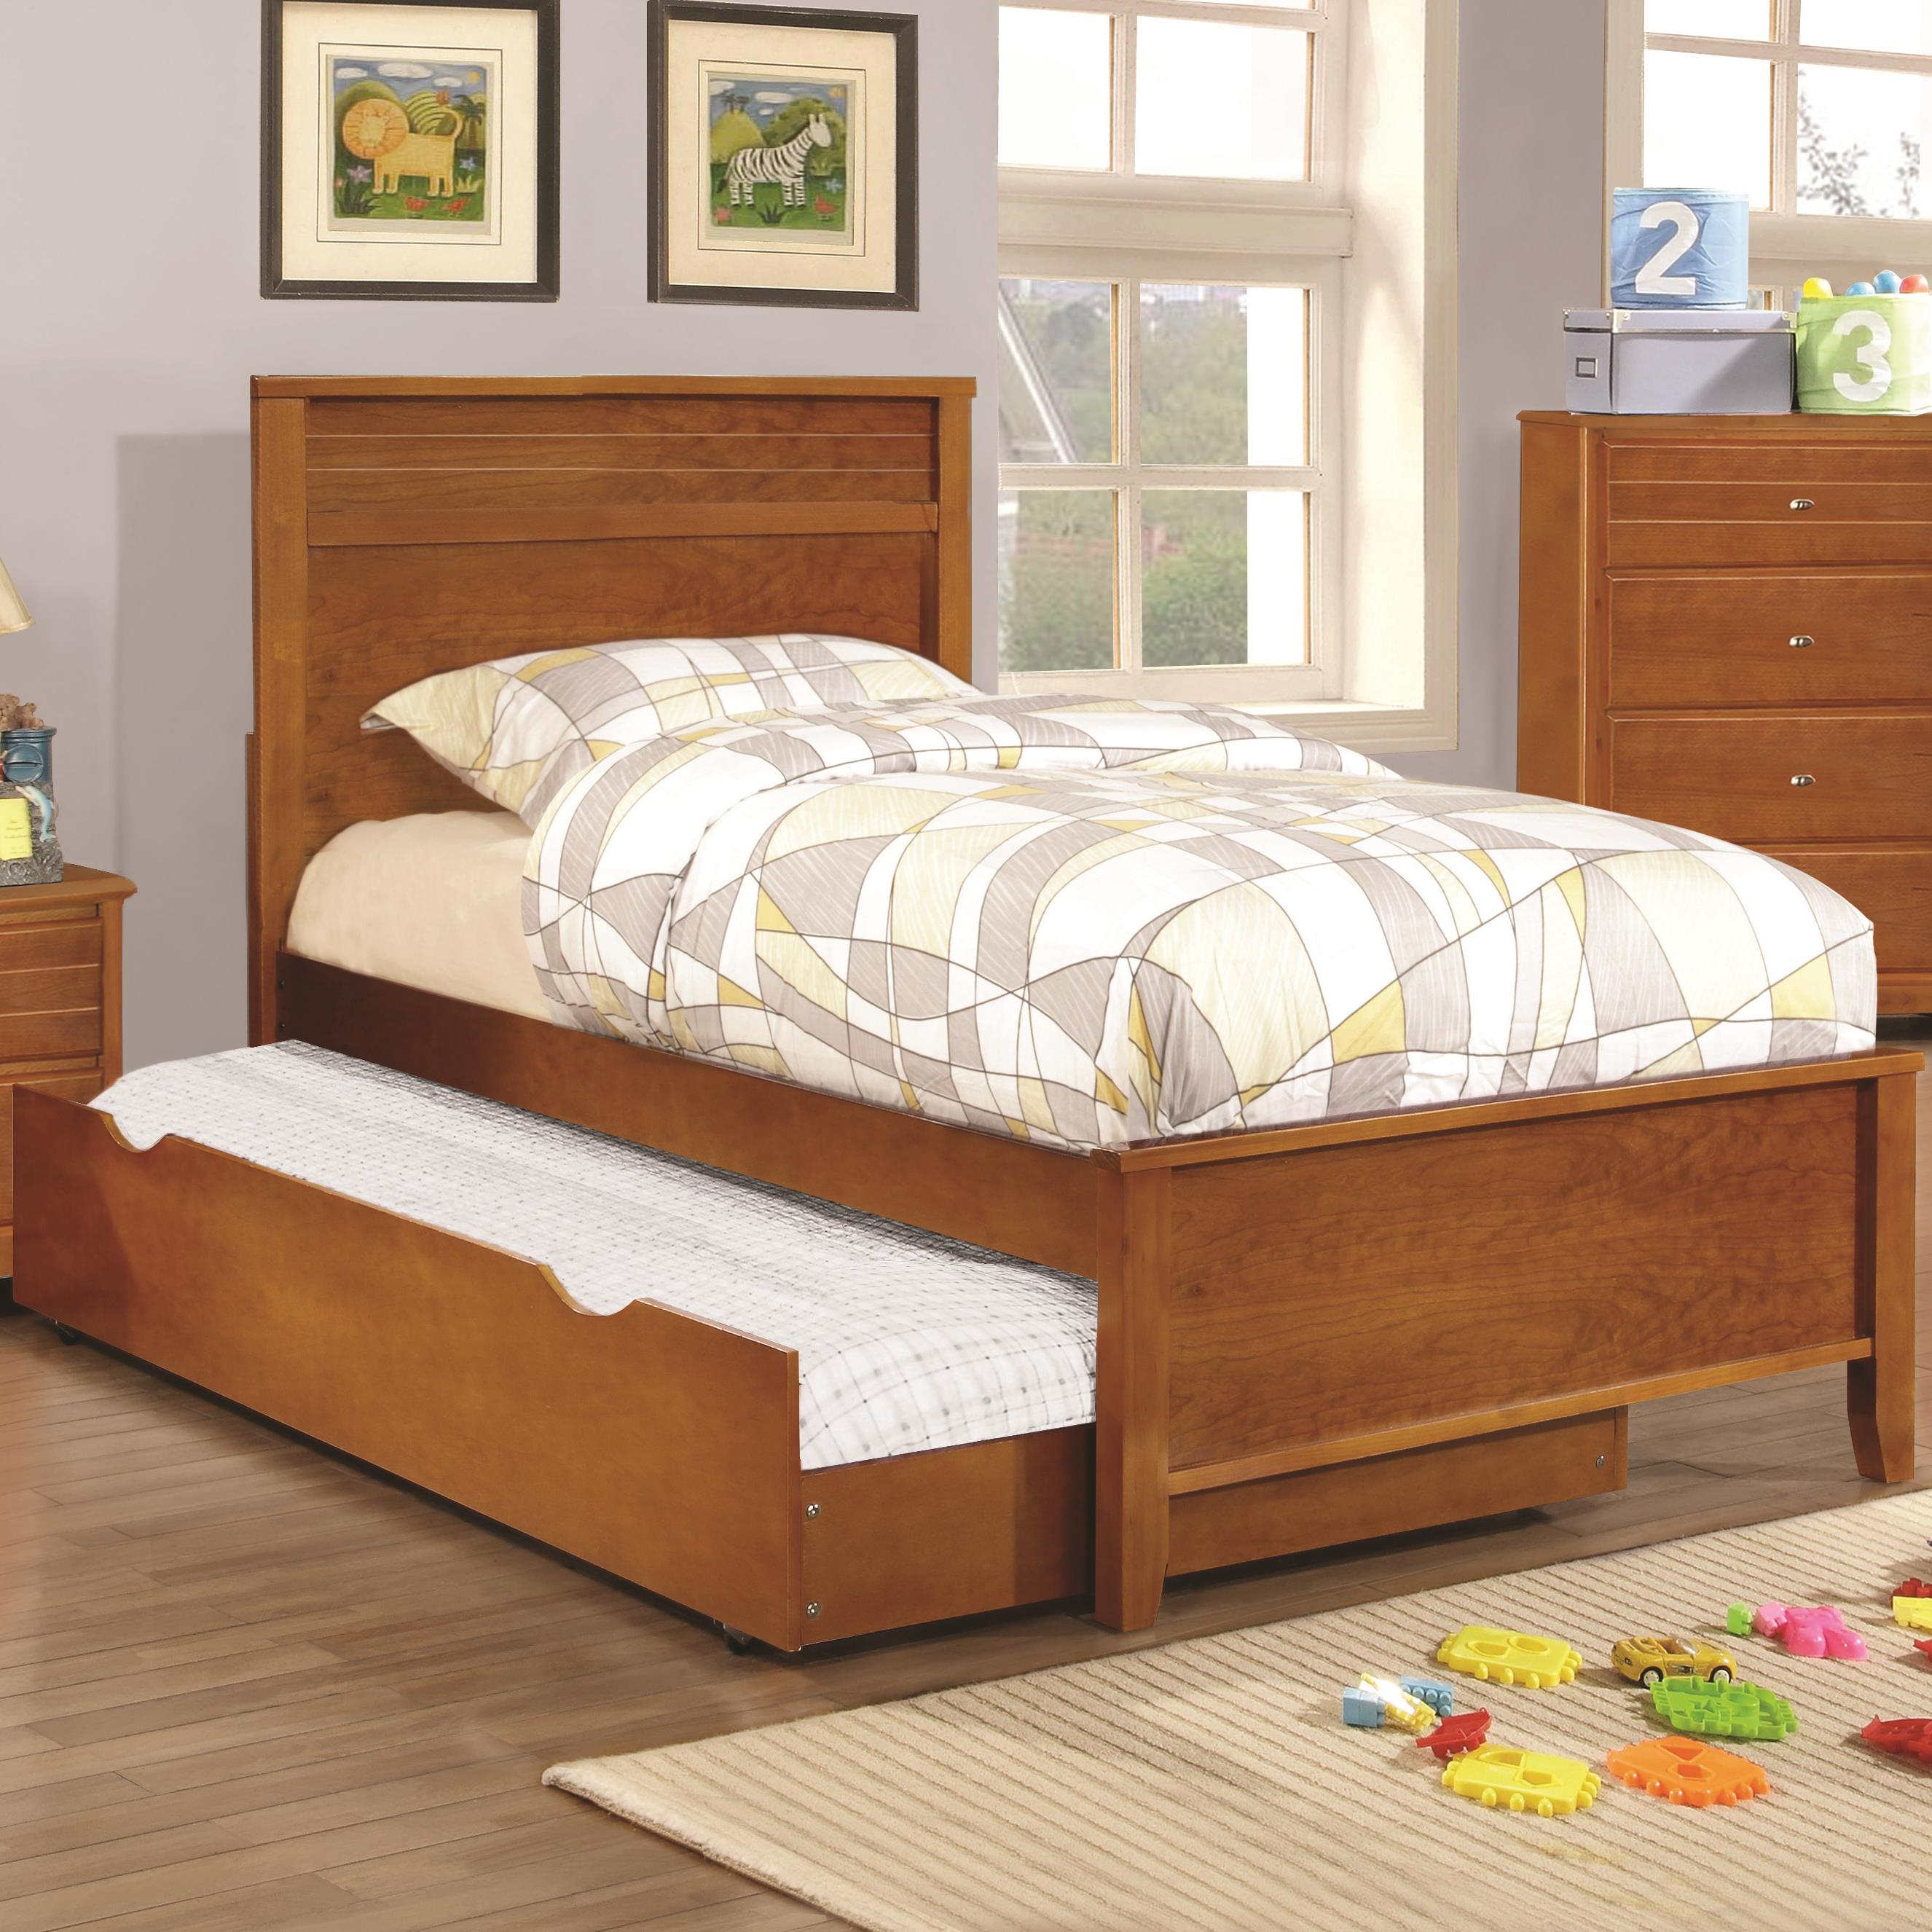 Coaster Ashton Collection Twin Bed with Trundle - Item Number: 400811T+400816